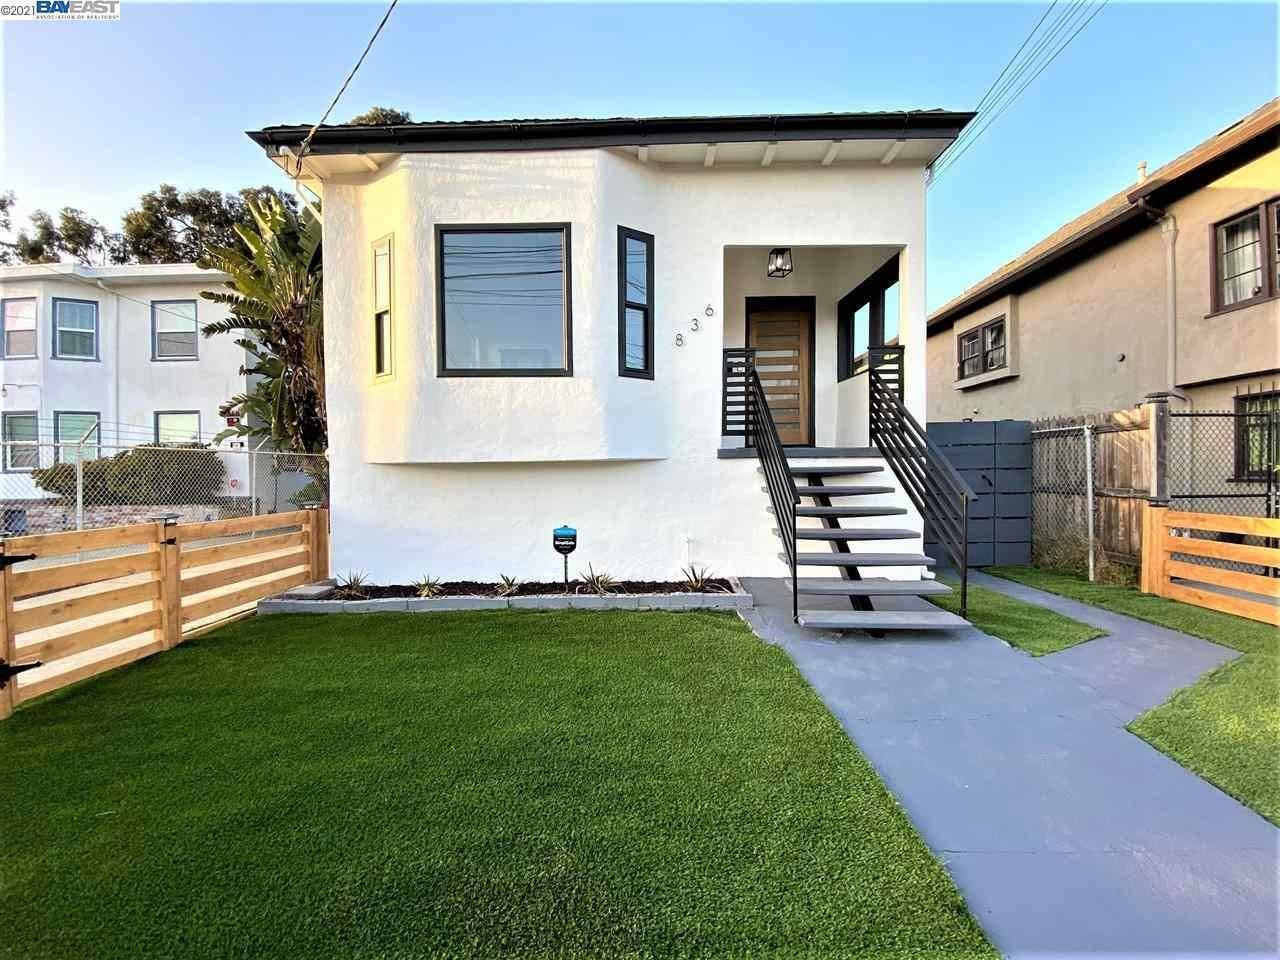 Property for Sale at 836 47Th Street Oakland, California 94608 United States